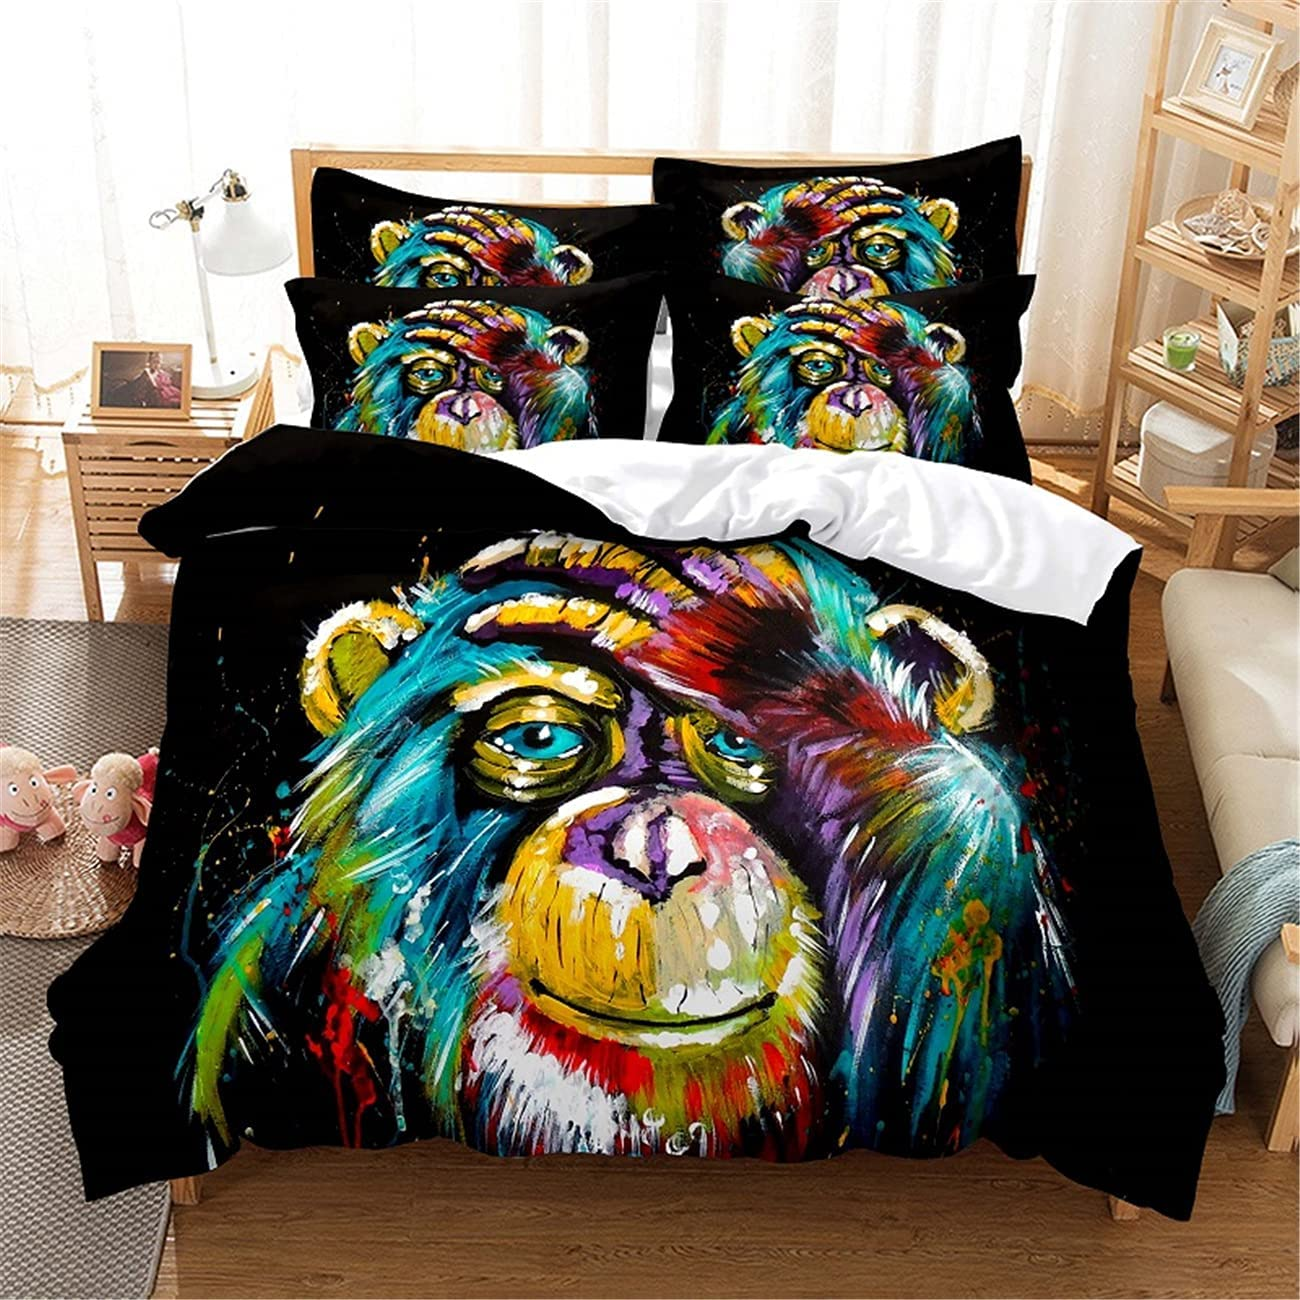 Superfine Factory outlet Fiber Denver Mall Soft Three Piece Monkey Dig Cover Painted Quilt